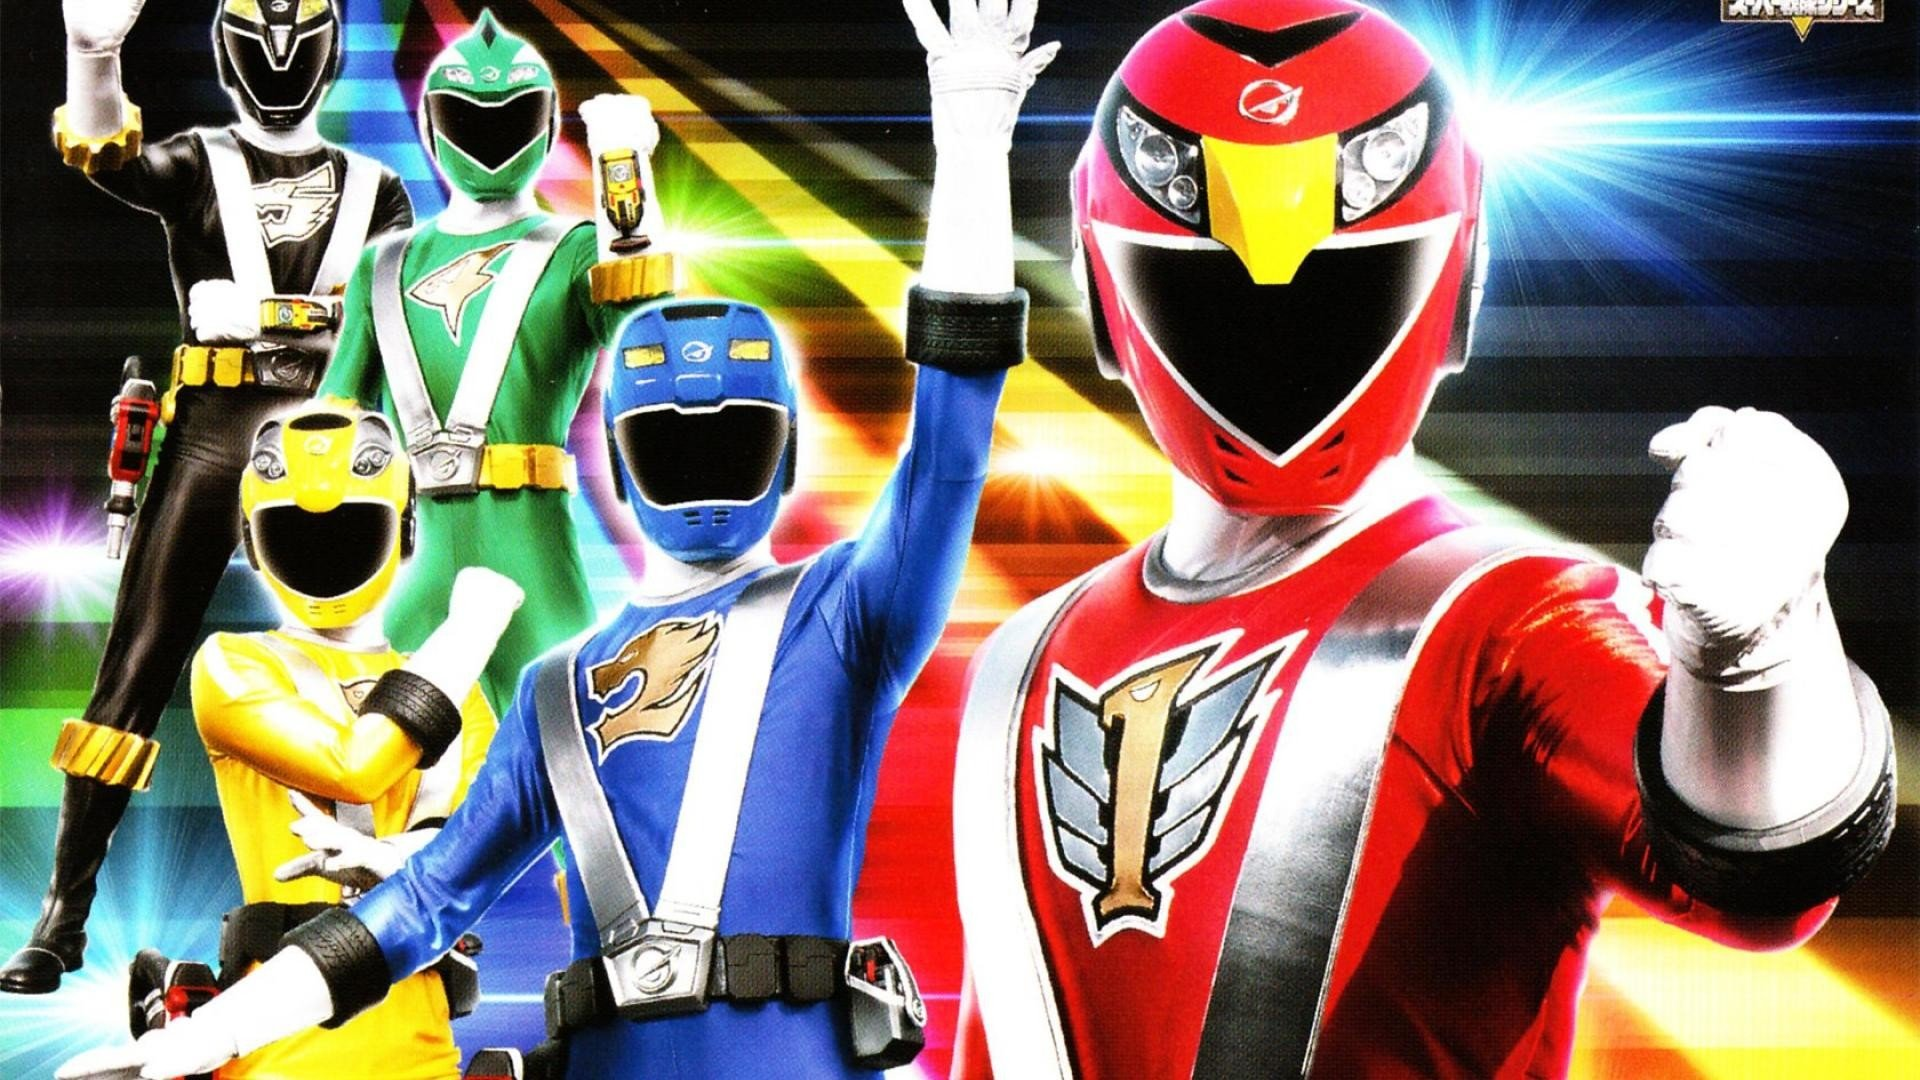 Power Rangers Jungle Fury Wallpaper 64 images 1920x1080